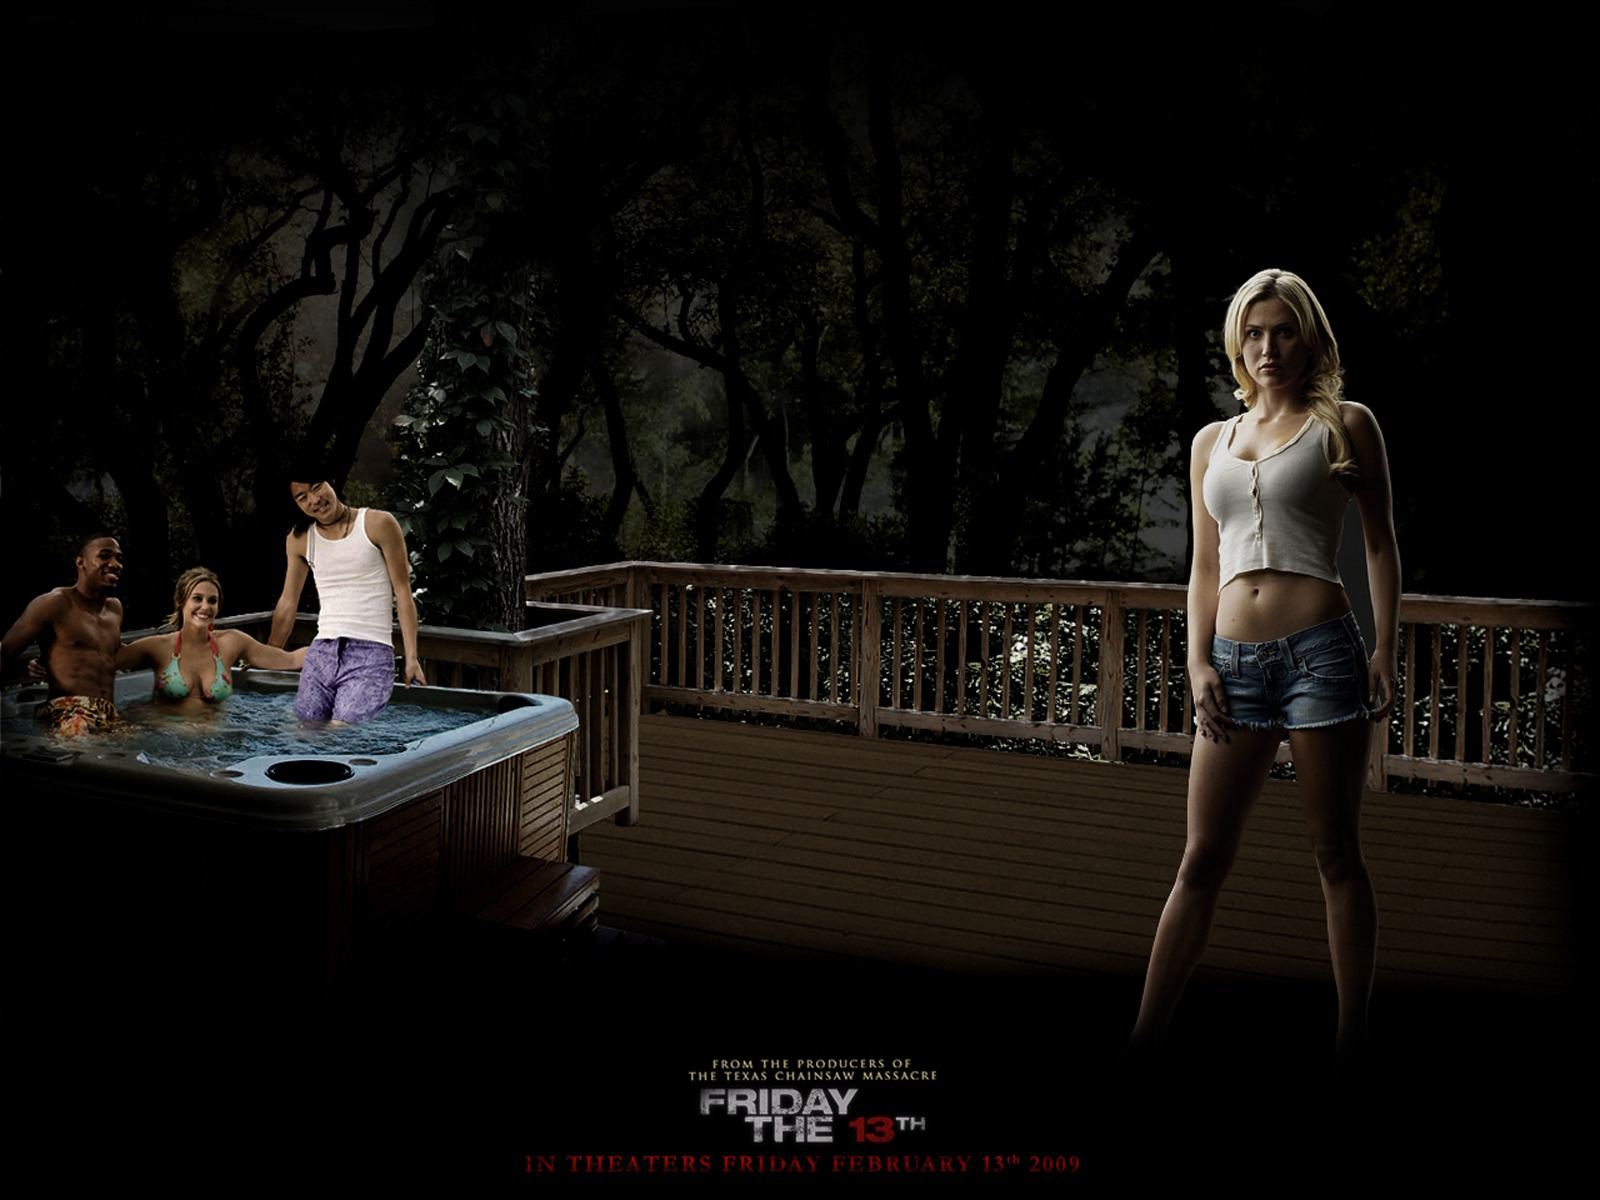 willa ford in firday the 13th wallpaper friday the 13th movies